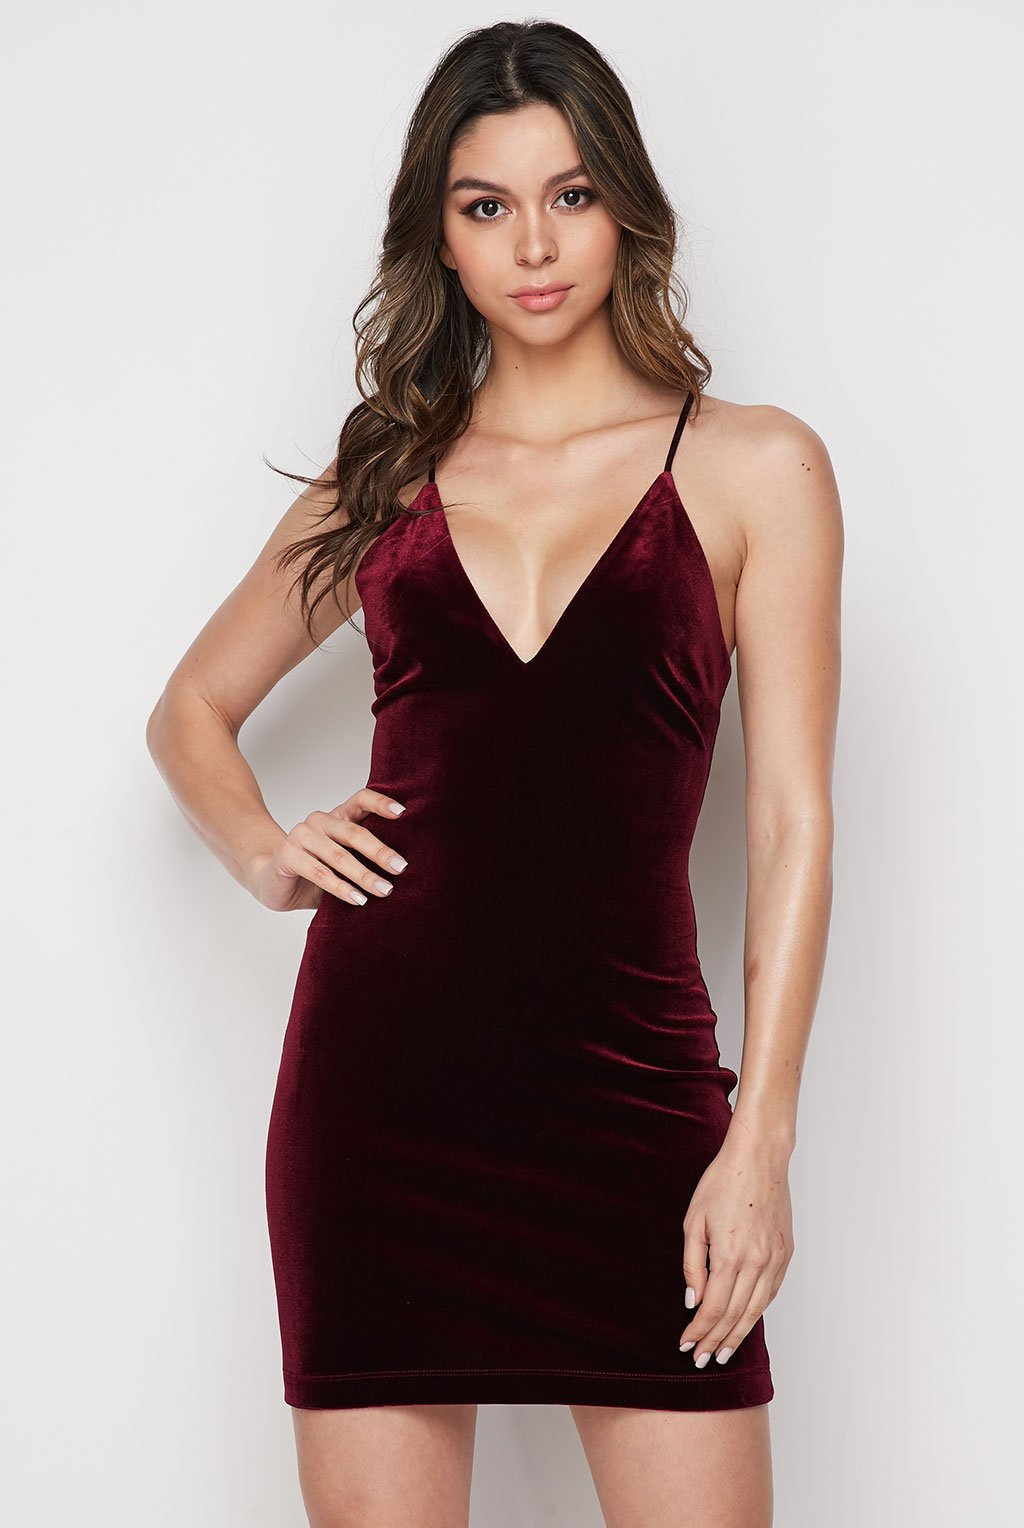 Teeze Me | Sleeveless Spaghetti Strap Deep V Neck Bodycon Dress  | Burgundy | Teeze Me Juniors Apparel